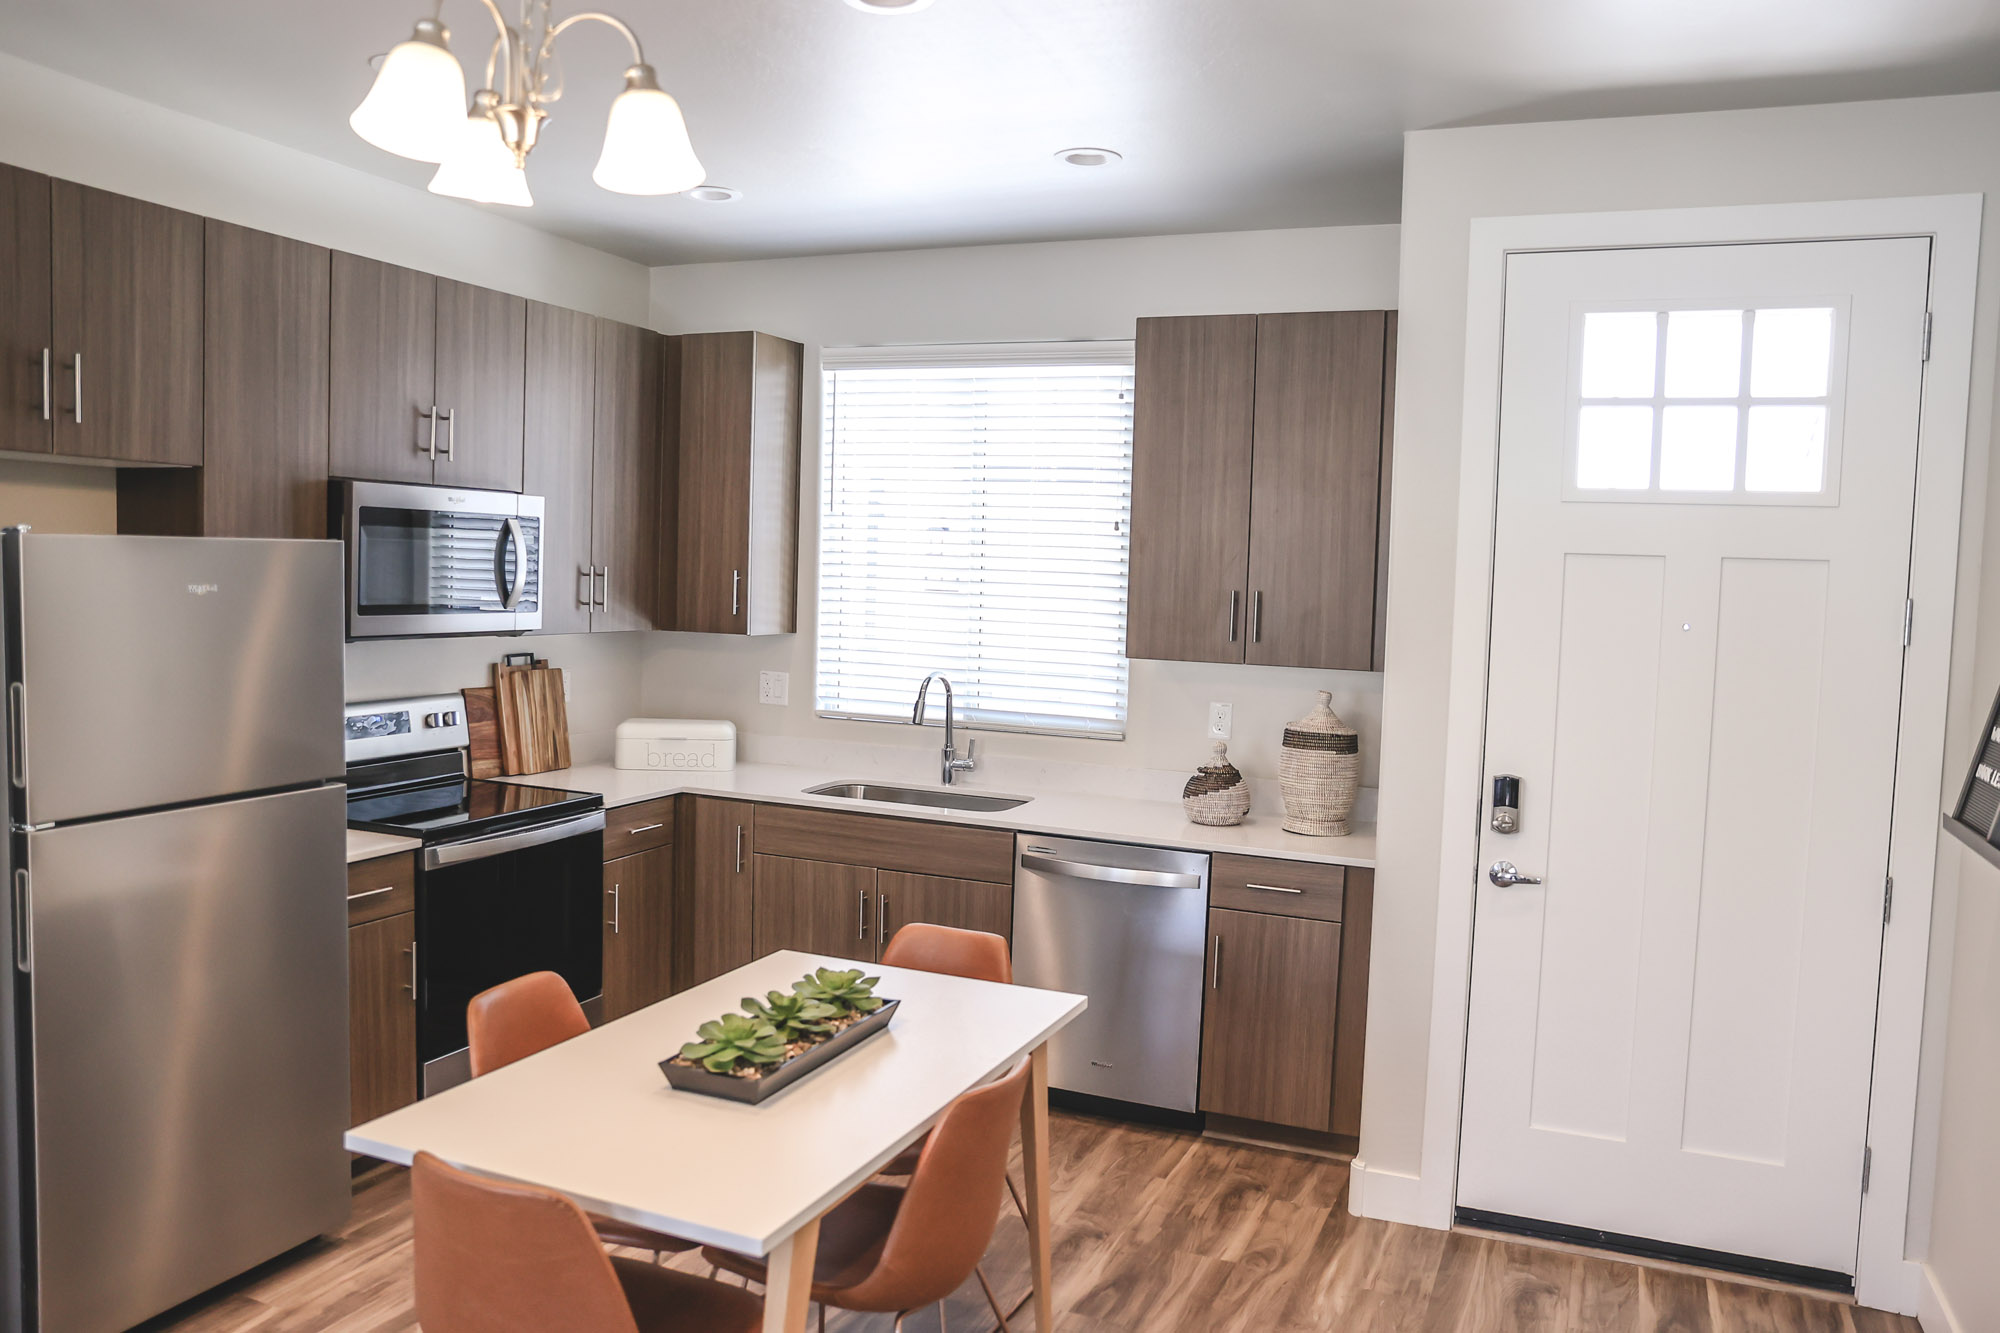 Modern Finishes and Appliances at Village at Harvard Crossing Apartments in Goodyear, AZ